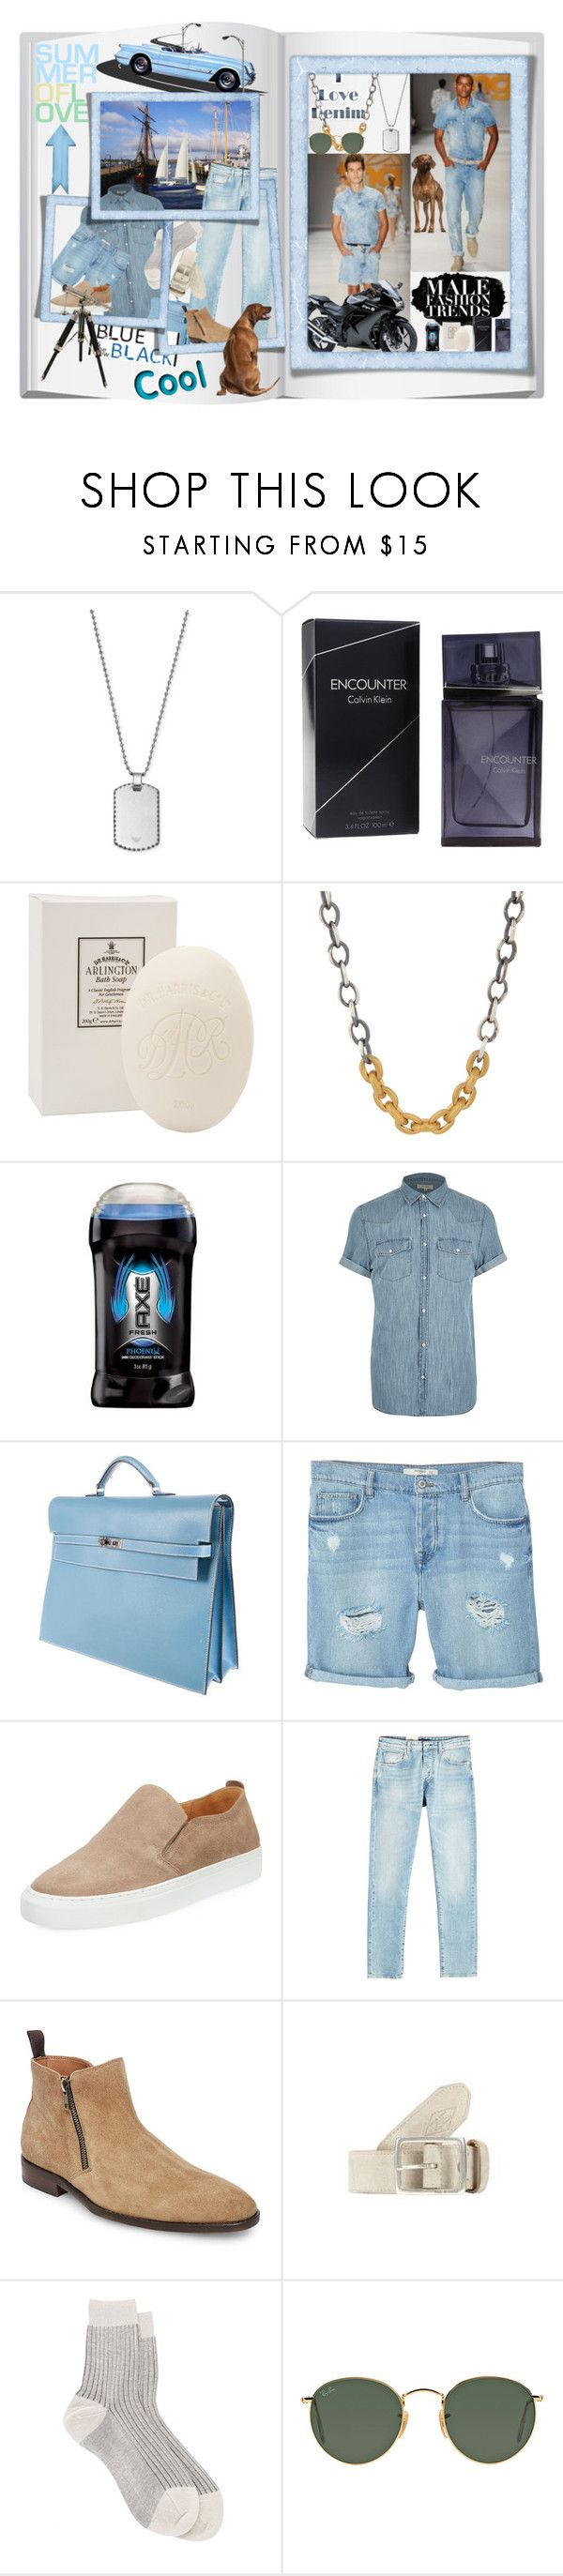 """""""Country roads I just hang on!"""" by nefertiti1373 ❤ liked on Polyvore featuring Ralph Lauren Purple Label, Kawasaki, Emporio Armani, Calvin Klein, D.R. Harris & Co Ltd., Suzanne Felsen, River Island, Hermès, MANGO MAN and Supply Lab"""